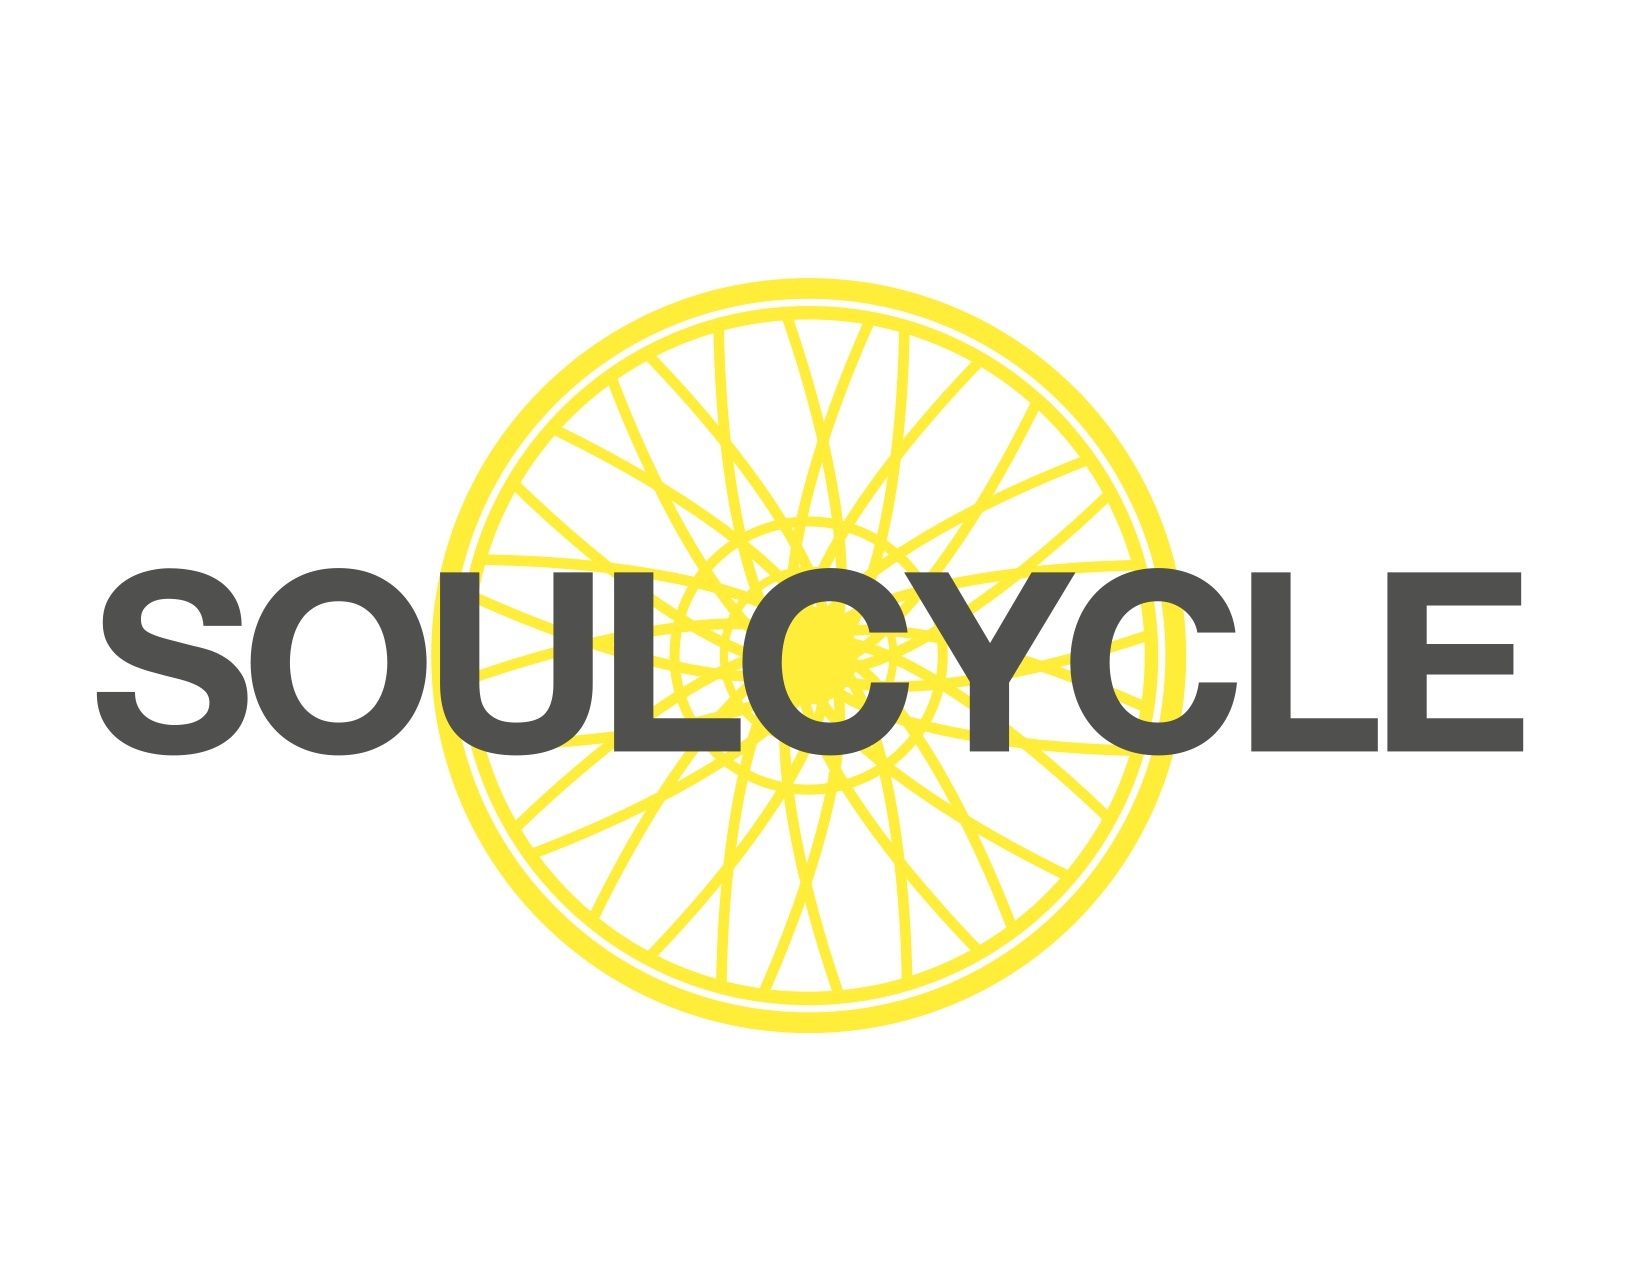 SoulCycle: Spinning towards Success - Technology and Operations Management